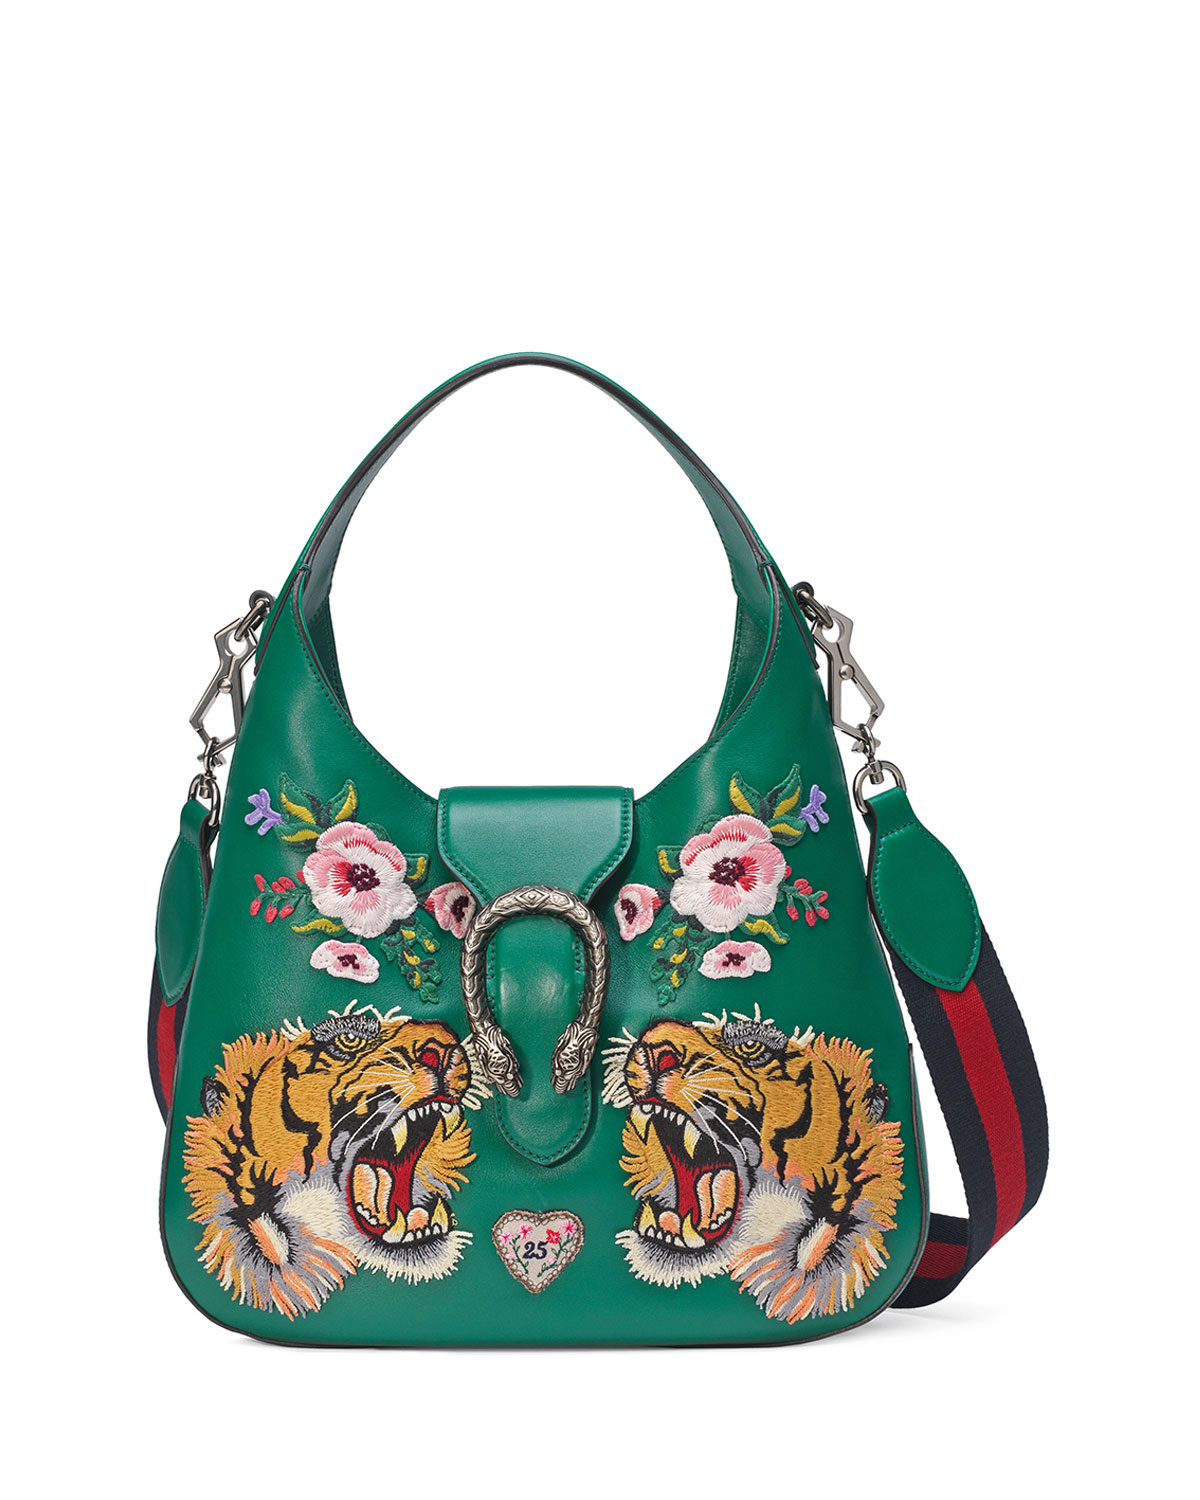 7d86f6688679eb Gucci Dionysus Small Embroidered-Tigers Hobo Bag, Green/Multi ...